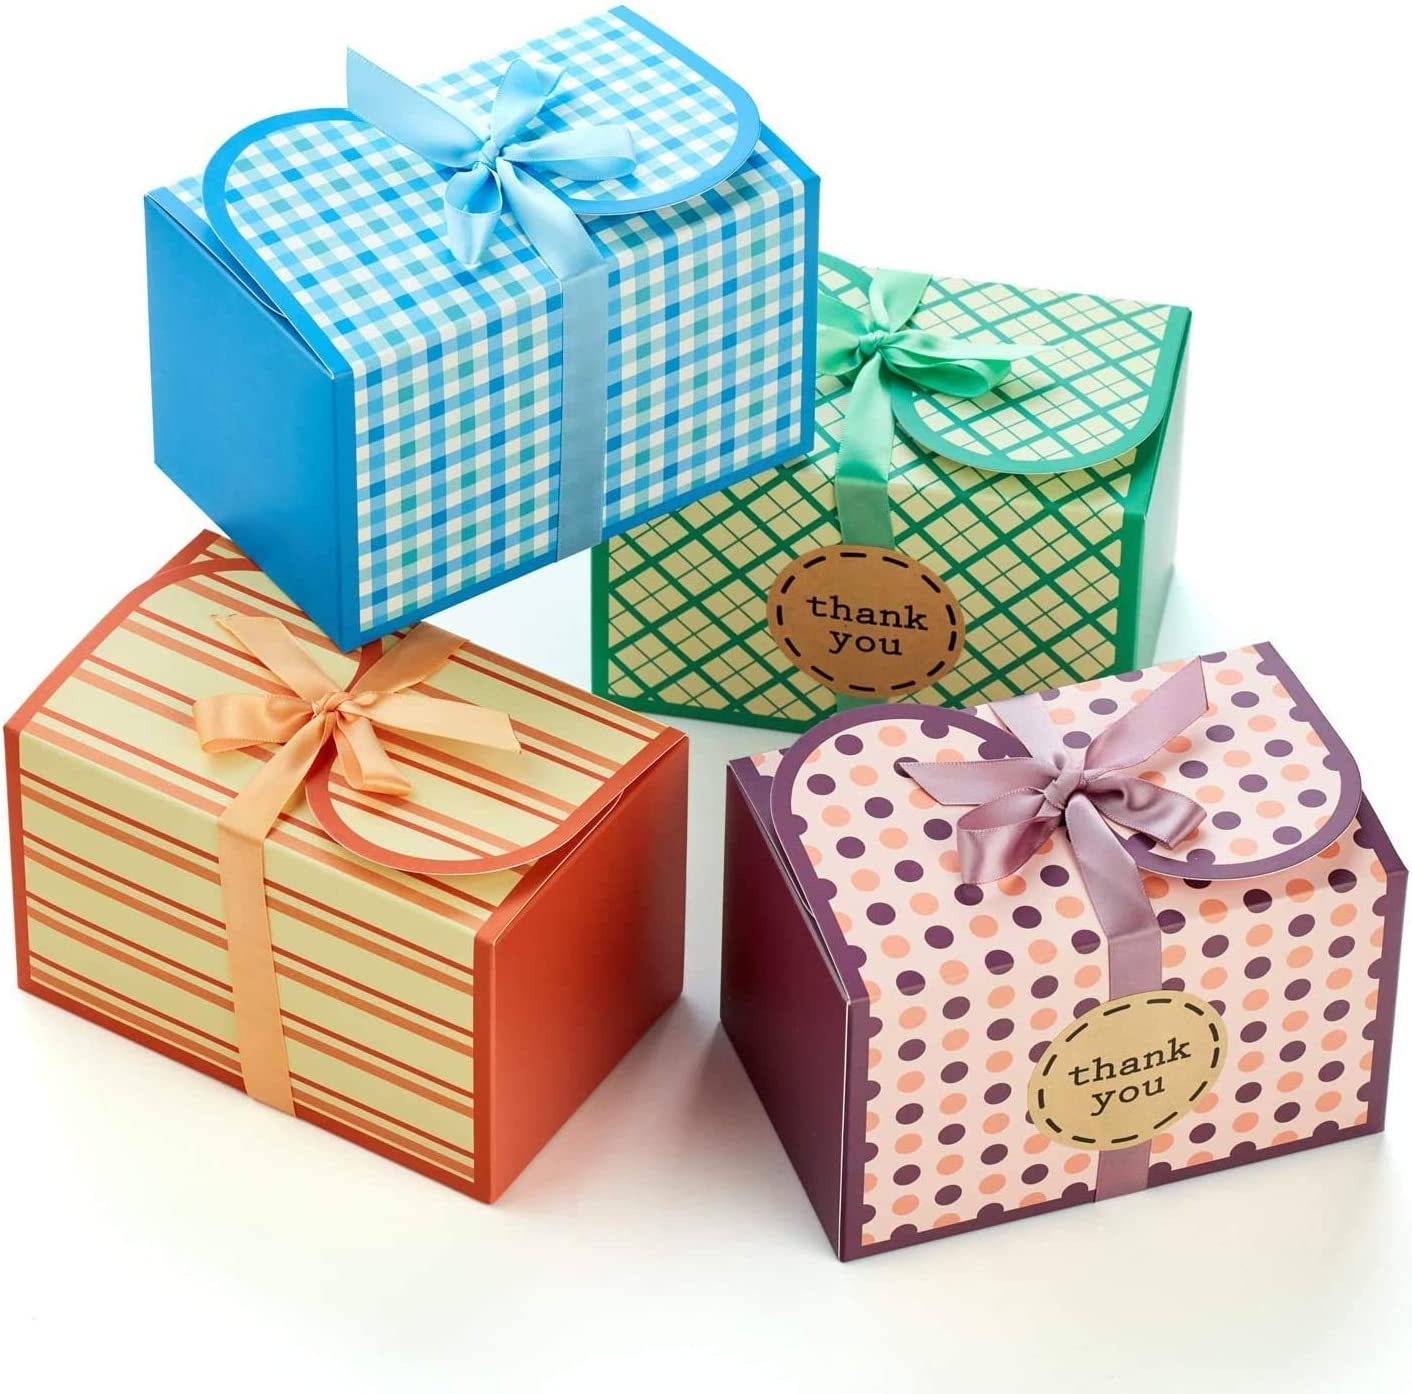 Hayley Cherie - Gift Treat Boxes with Ribbons and Thank You Stickers (20 Pack) - 6.5 x 4 x 4 inches - Thick 400gsm Card - For Cookies, Goodies, Candy, Parties, Christmas, Birthdays, Weddings